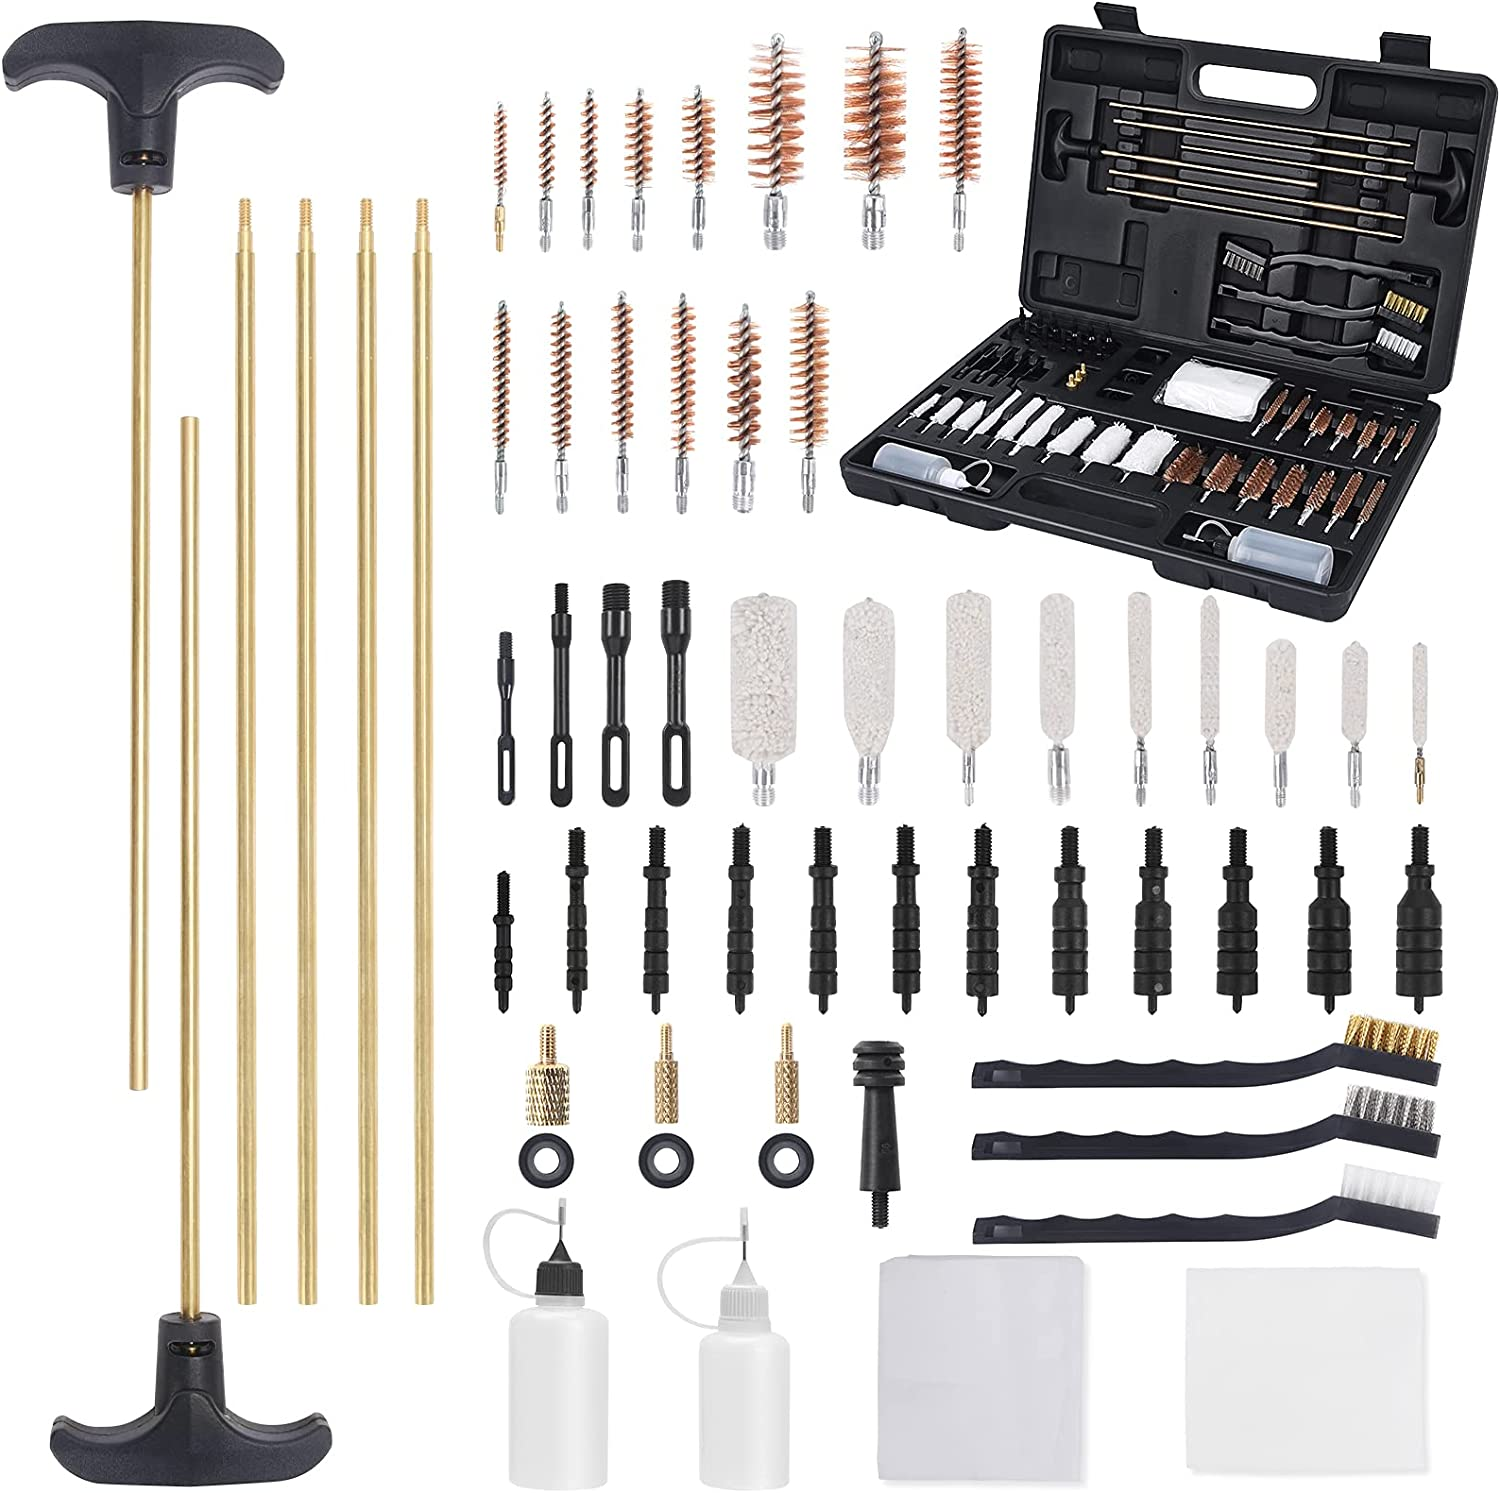 FullLit Universal Gun Cleaning Kit an Brushes Classic Today's only Guns All for